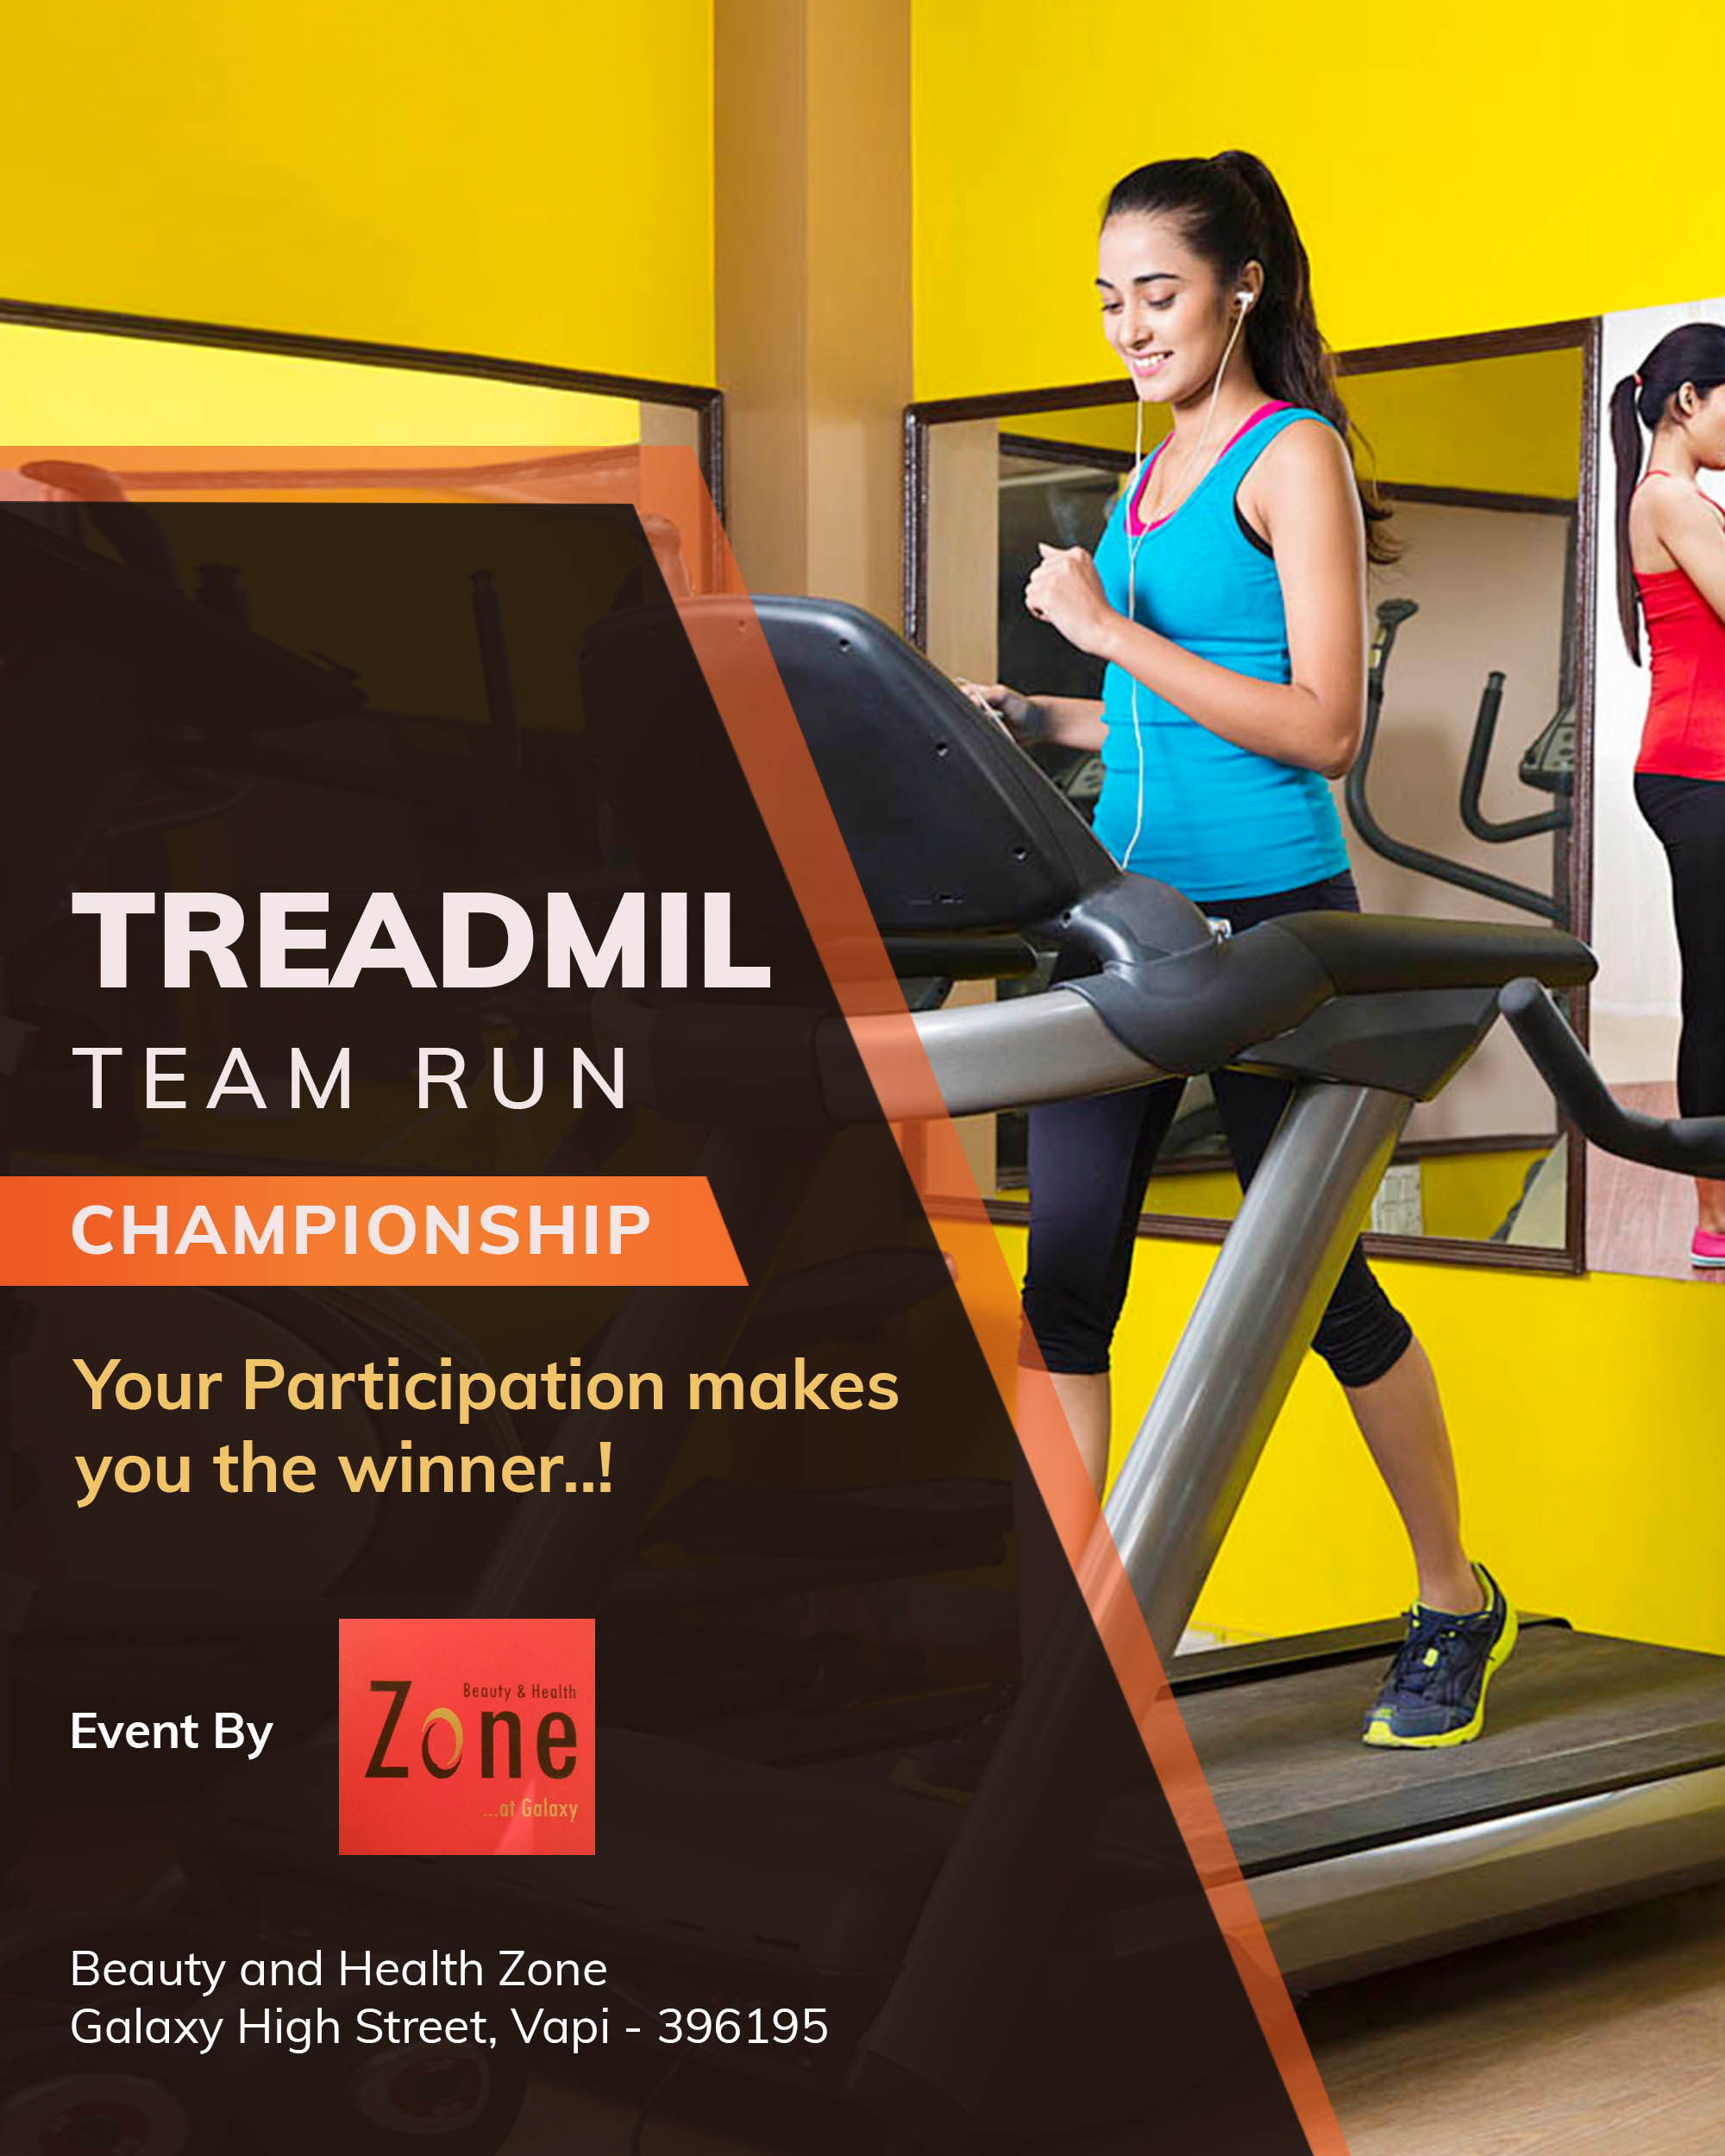 Treadmil Team Run